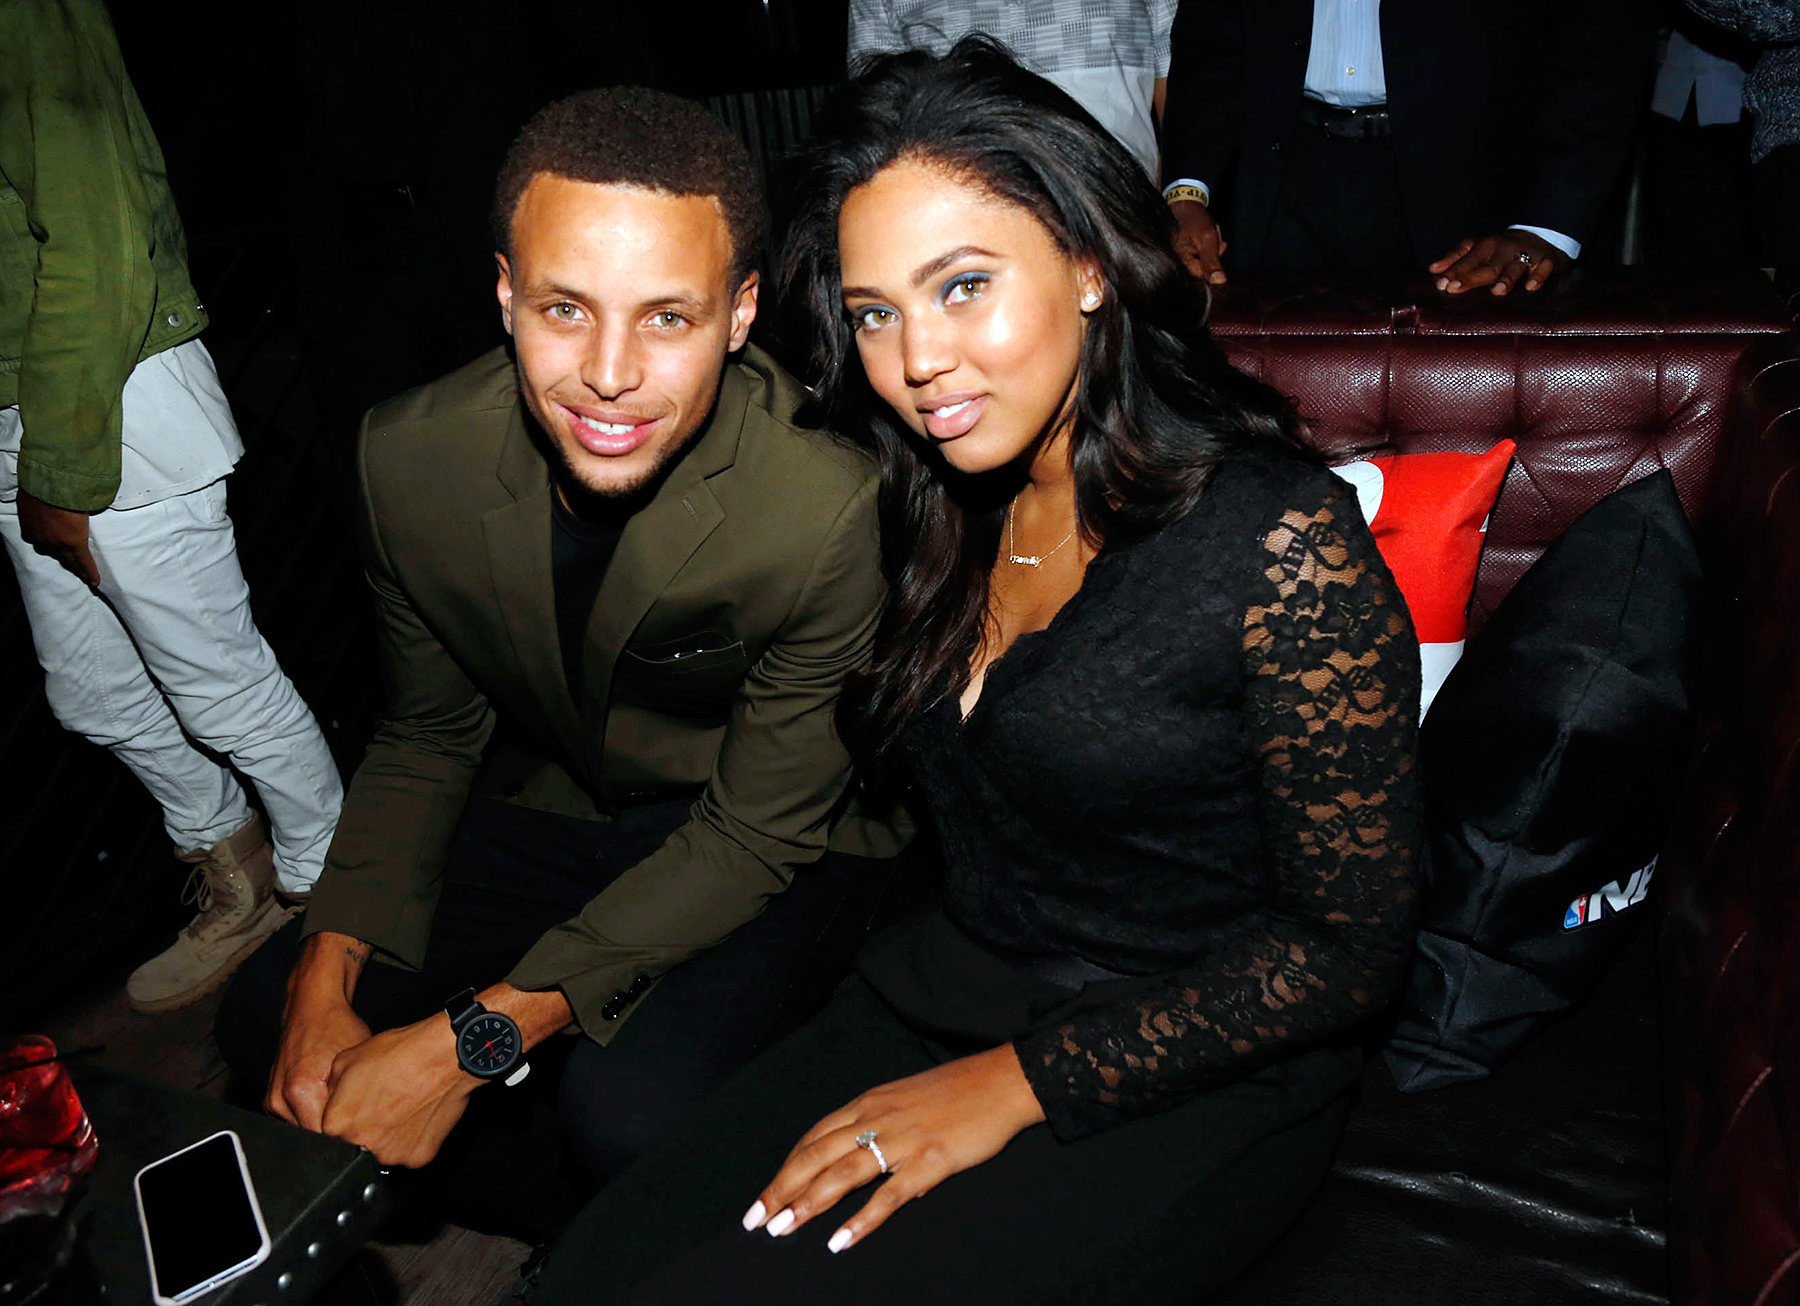 Stephen curry dating history